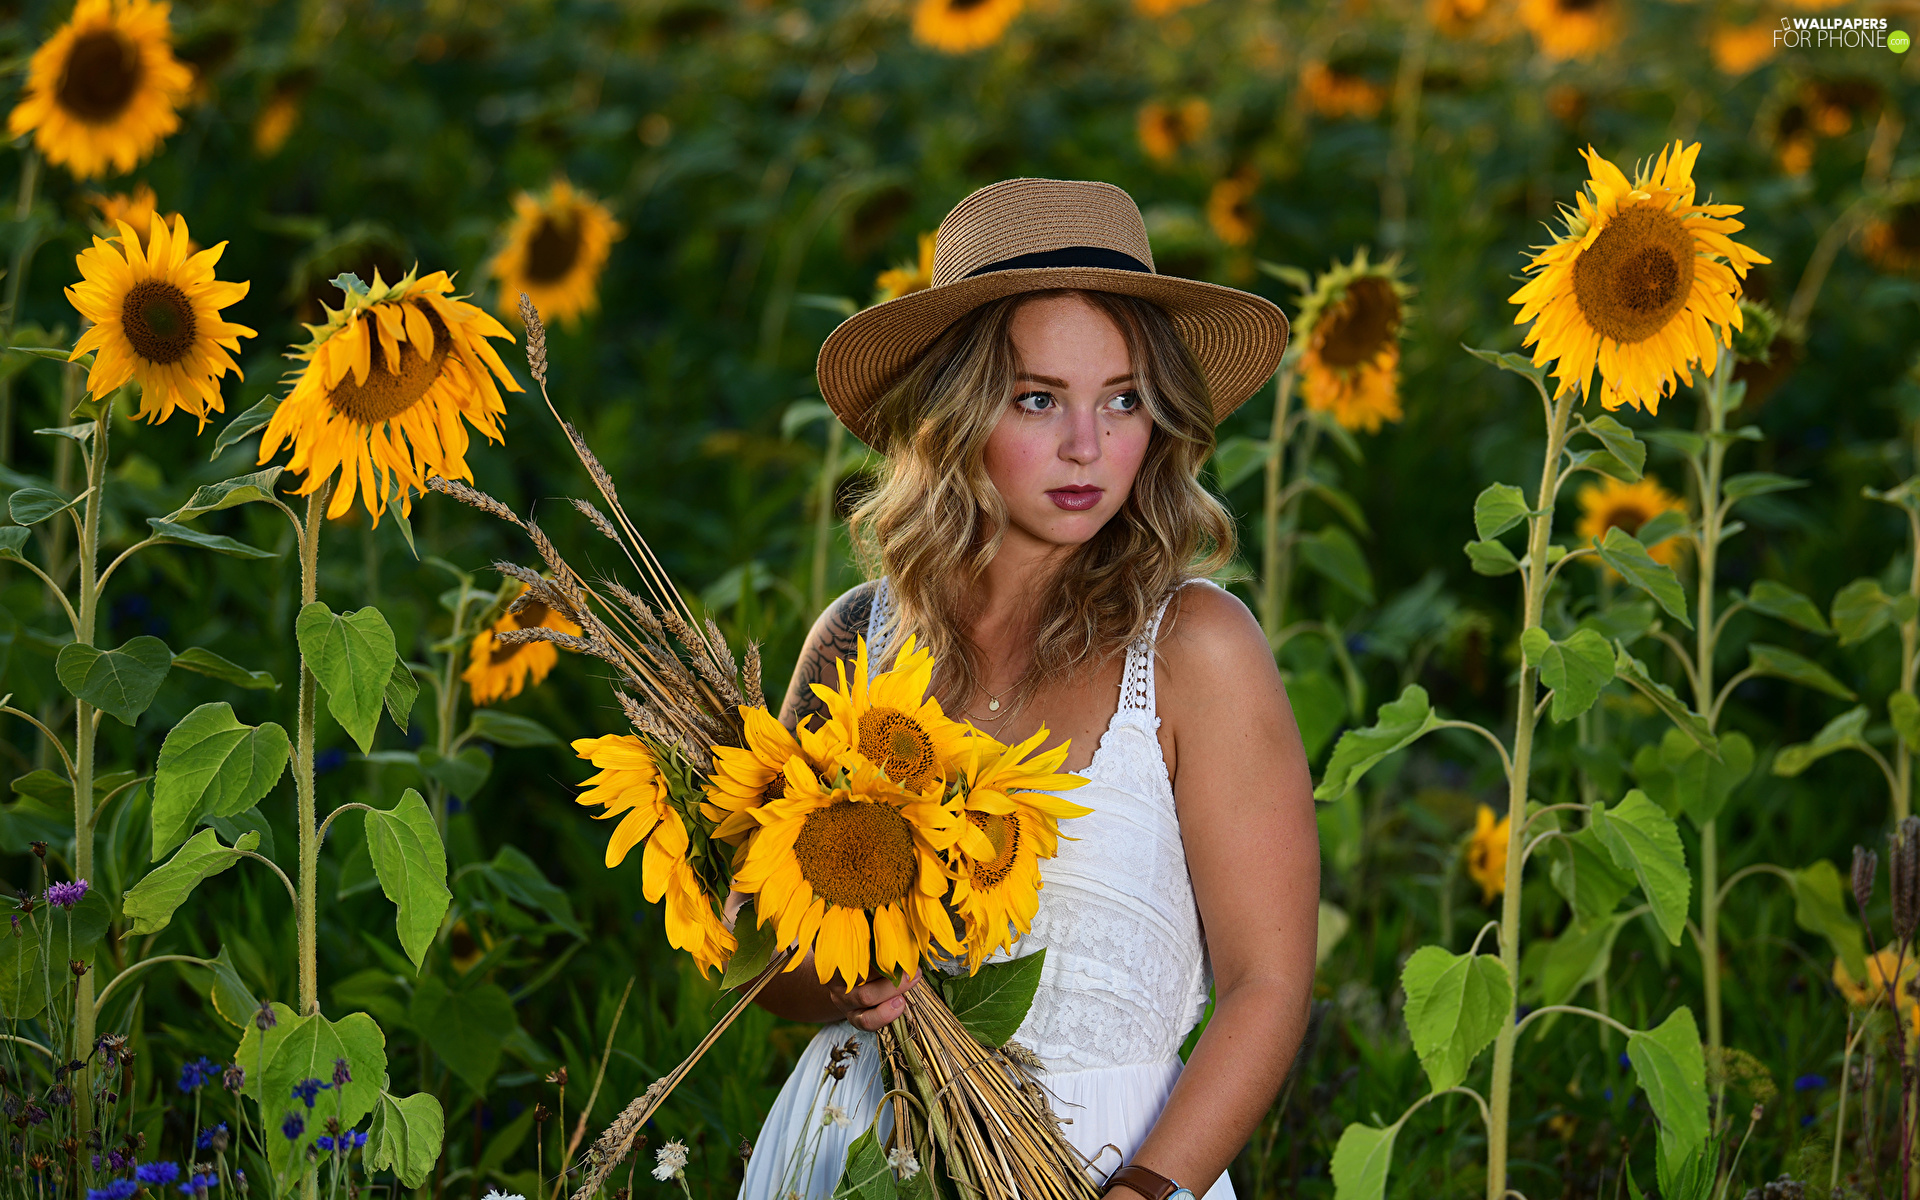 Hat, White, Nice sunflowers, dress, bouquet, Blonde, Women, Flowers